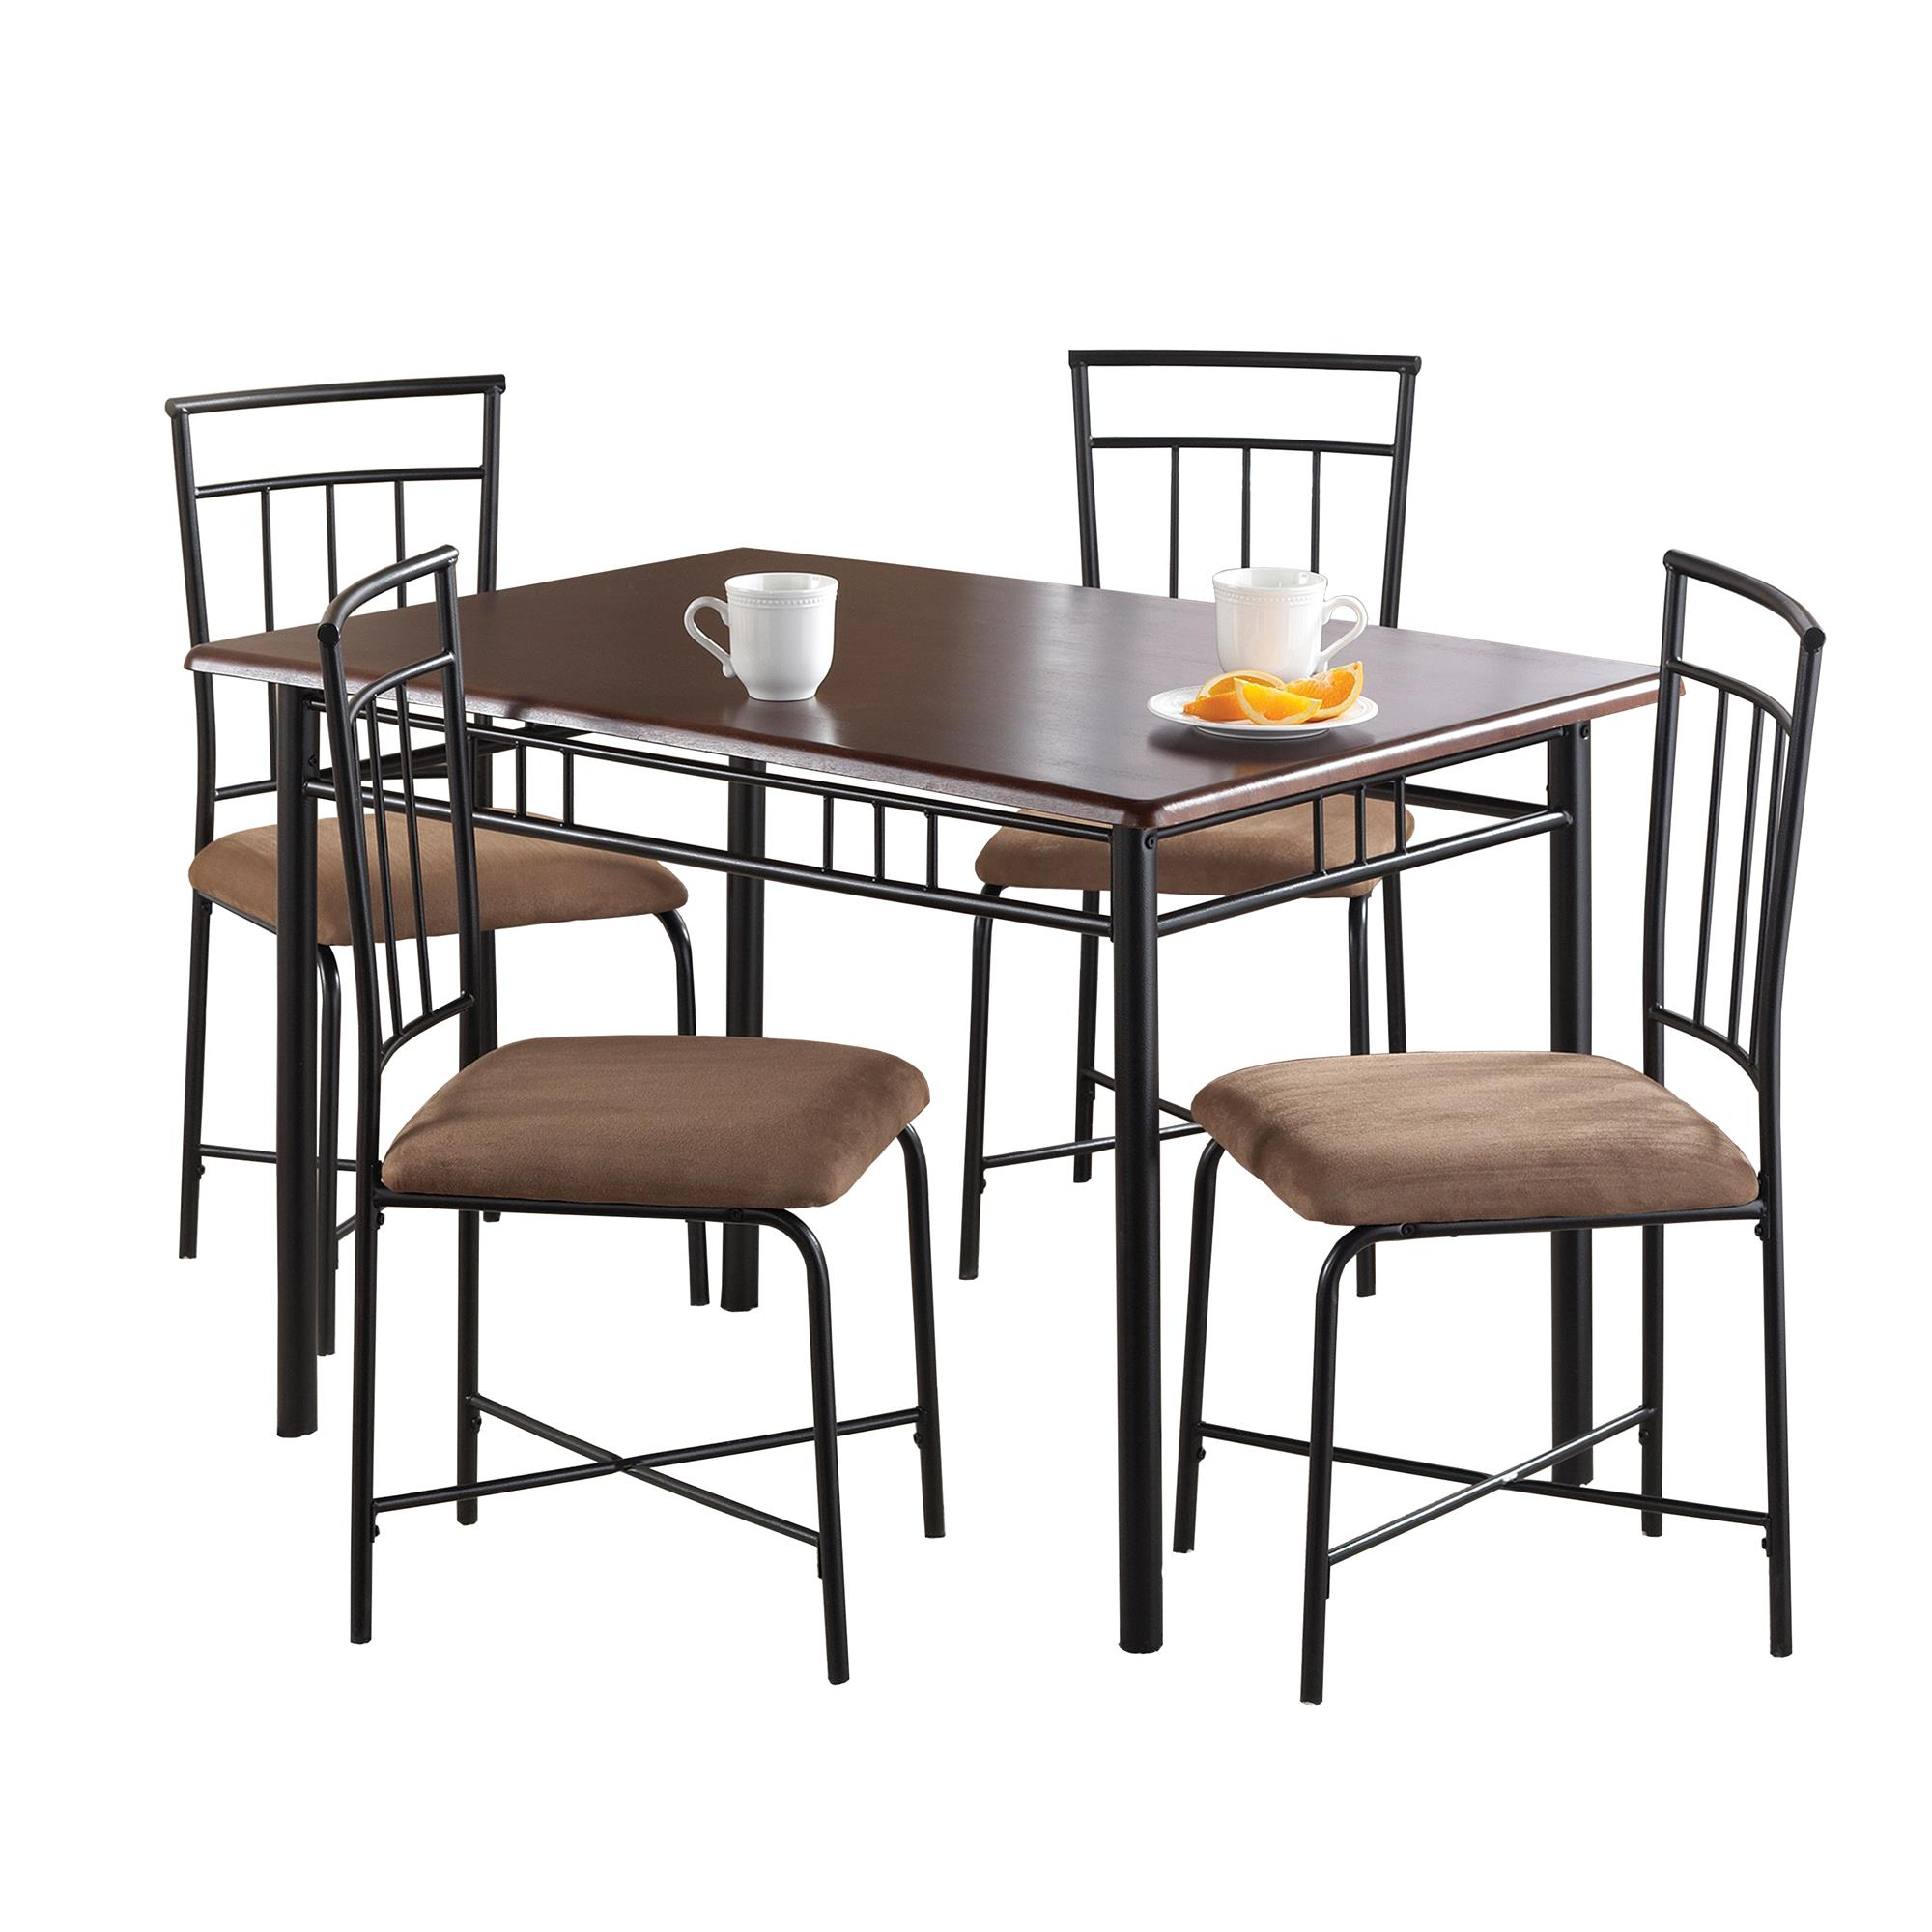 Fashionable Mainstays 5 Piece Dining Set, Multiple Colors – Walmart Pertaining To West Hill Family Table 3 Piece Dining Sets (View 8 of 25)